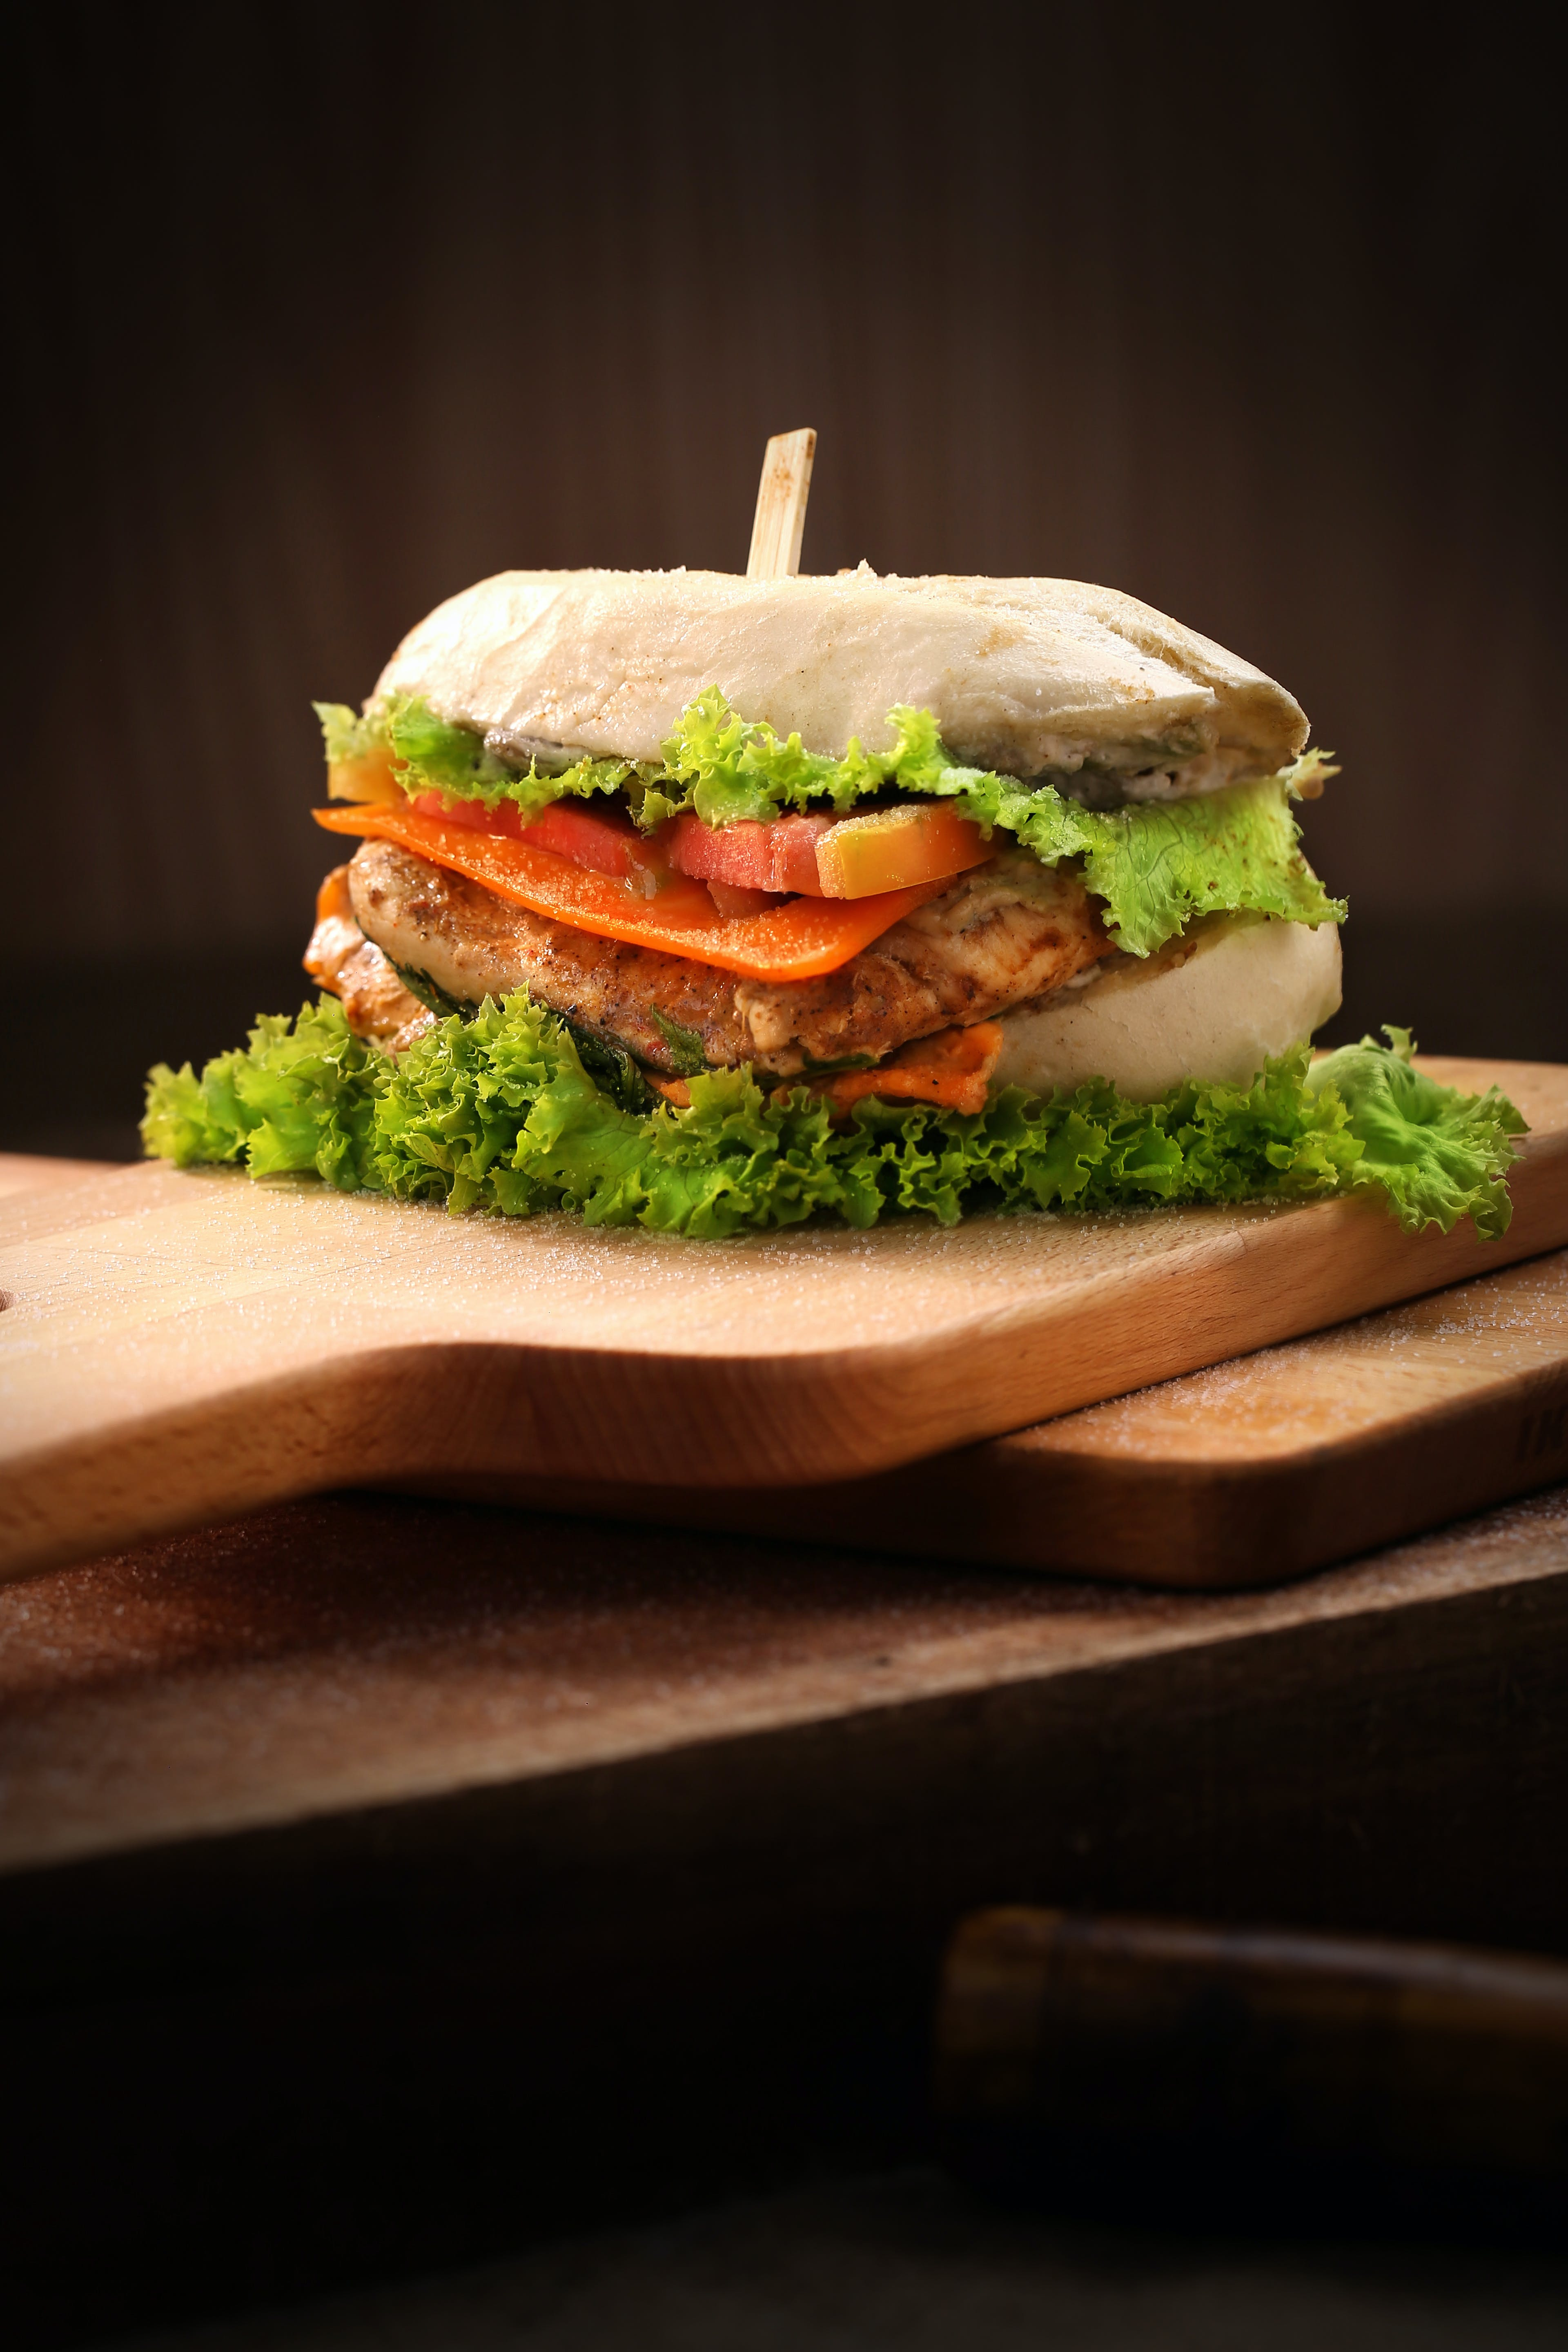 Cheese Burger on Brown Chopping Board